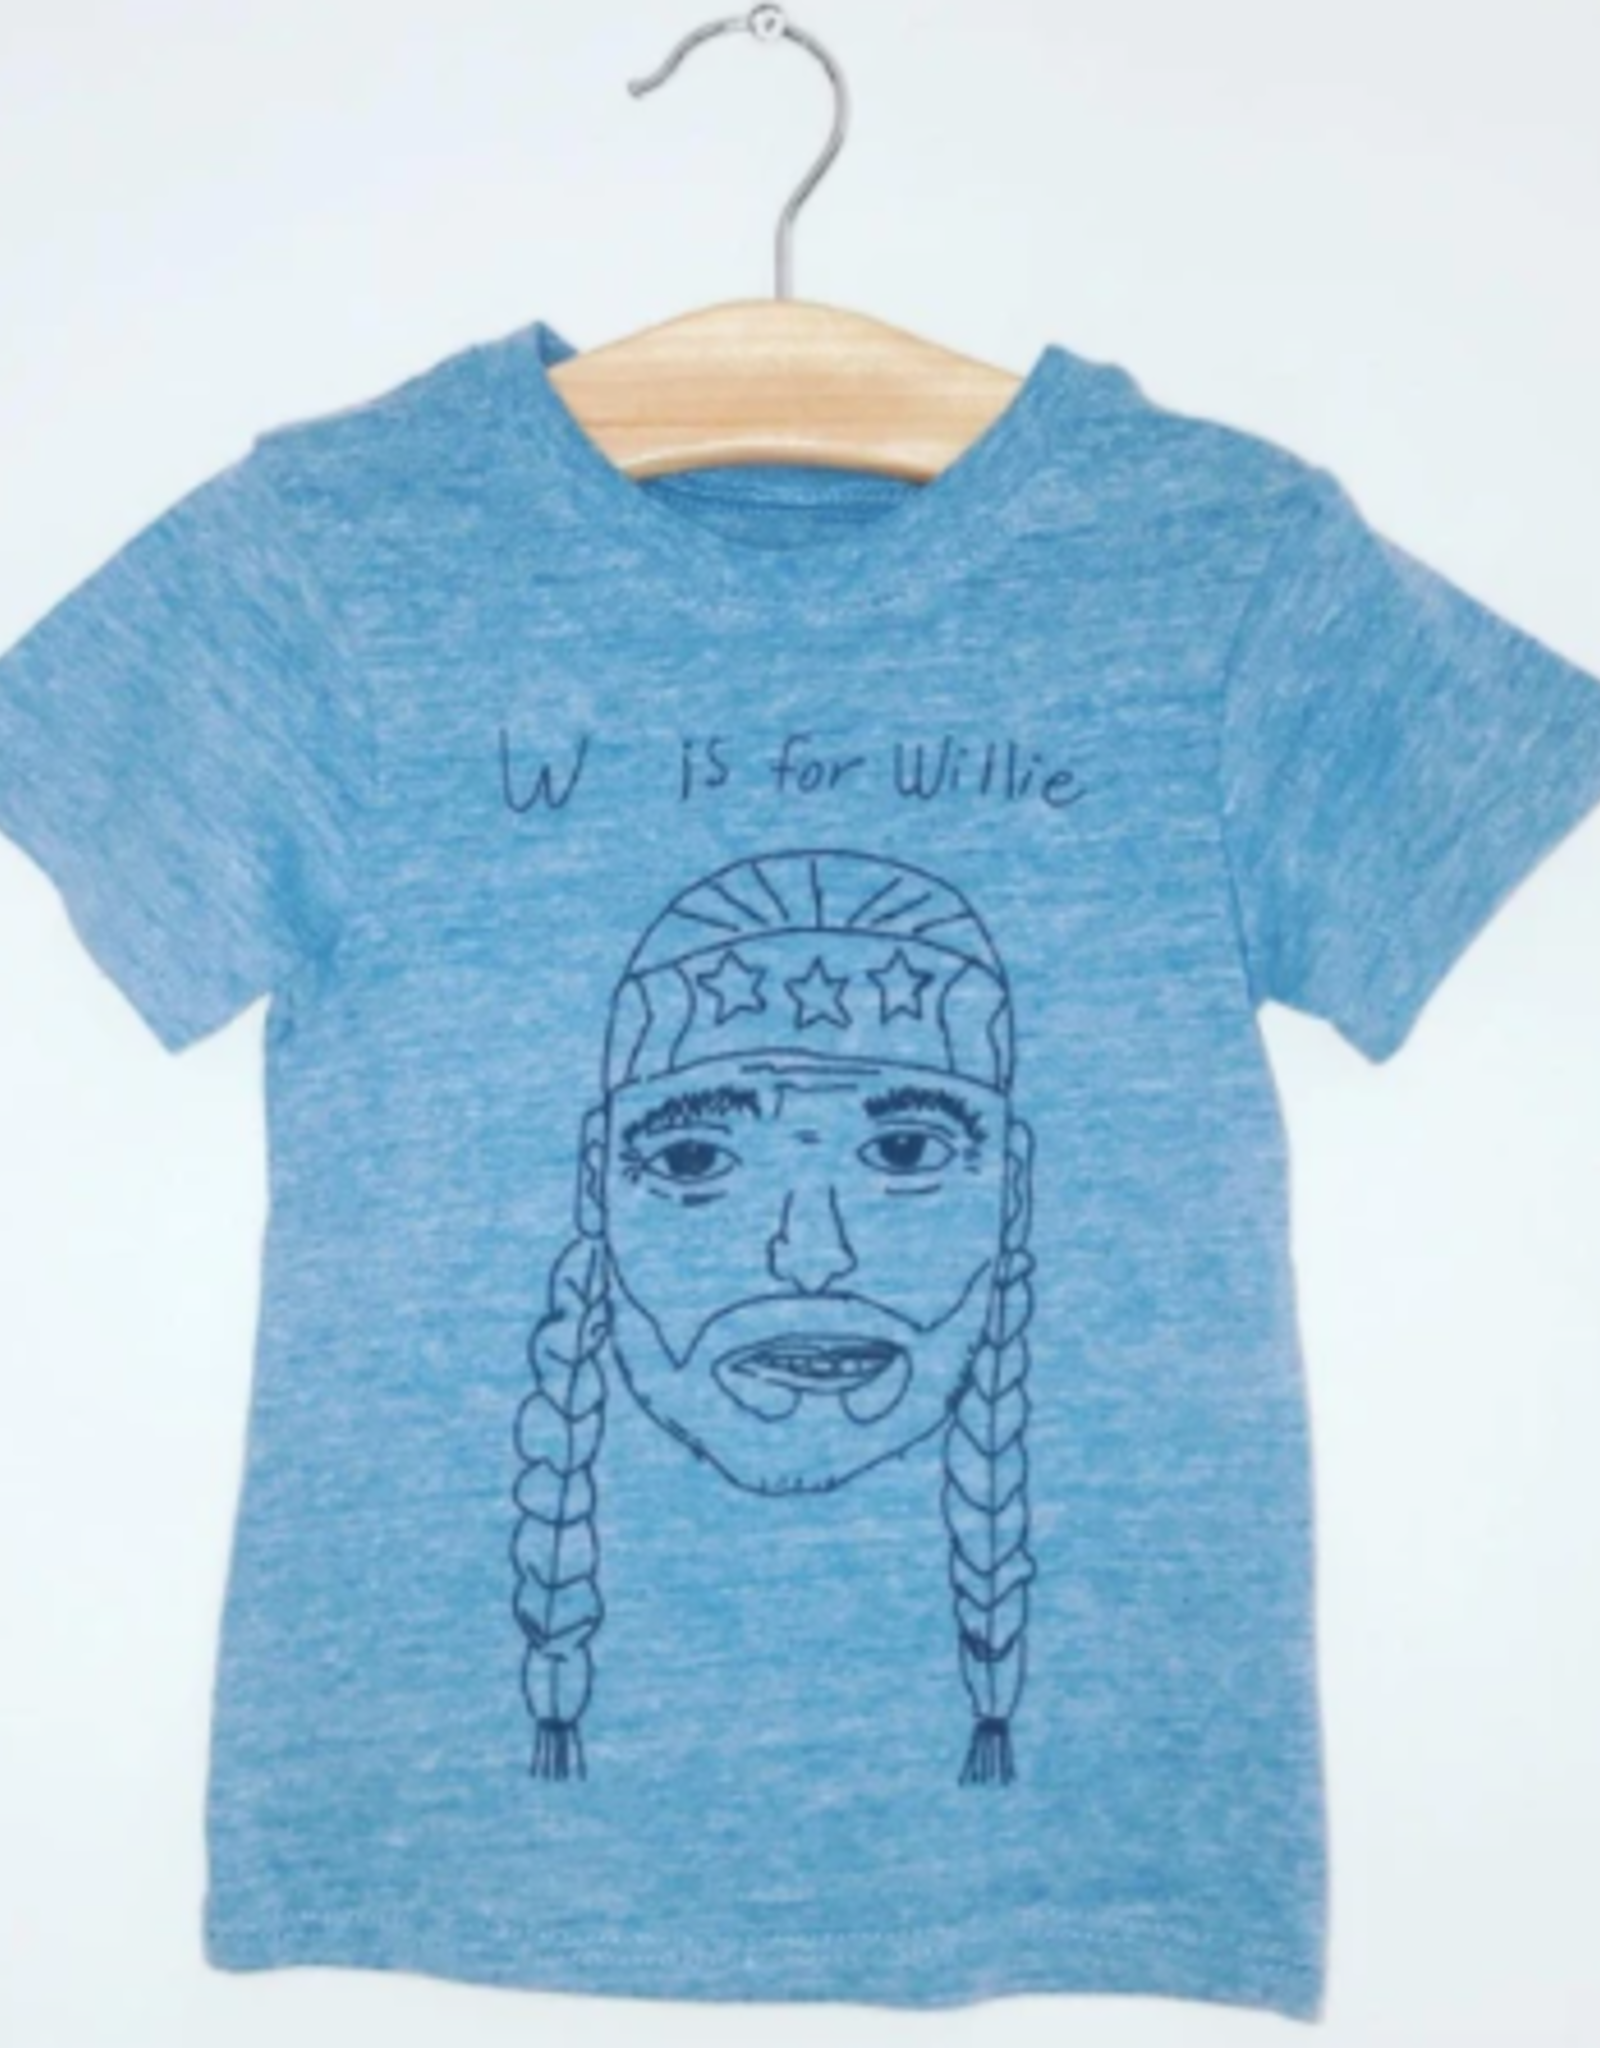 W is for Willie Toddler T-Shirt